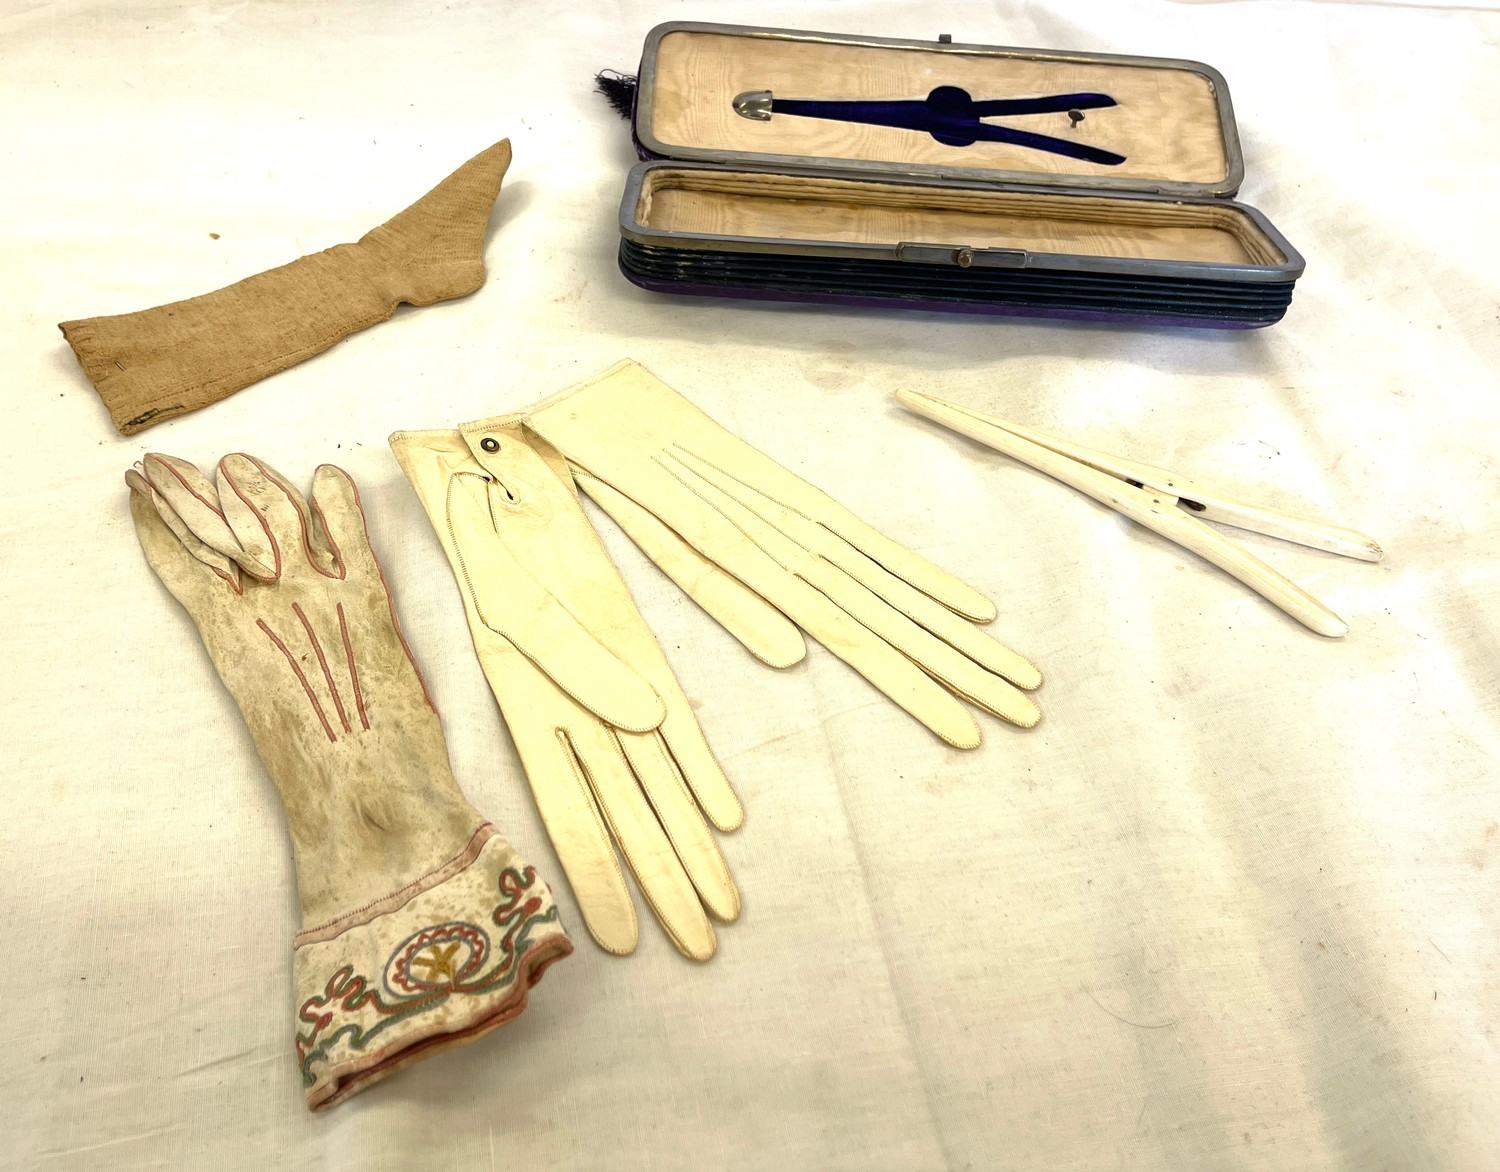 Antique concertina cased set of gloves and glove stretchers - Image 4 of 4